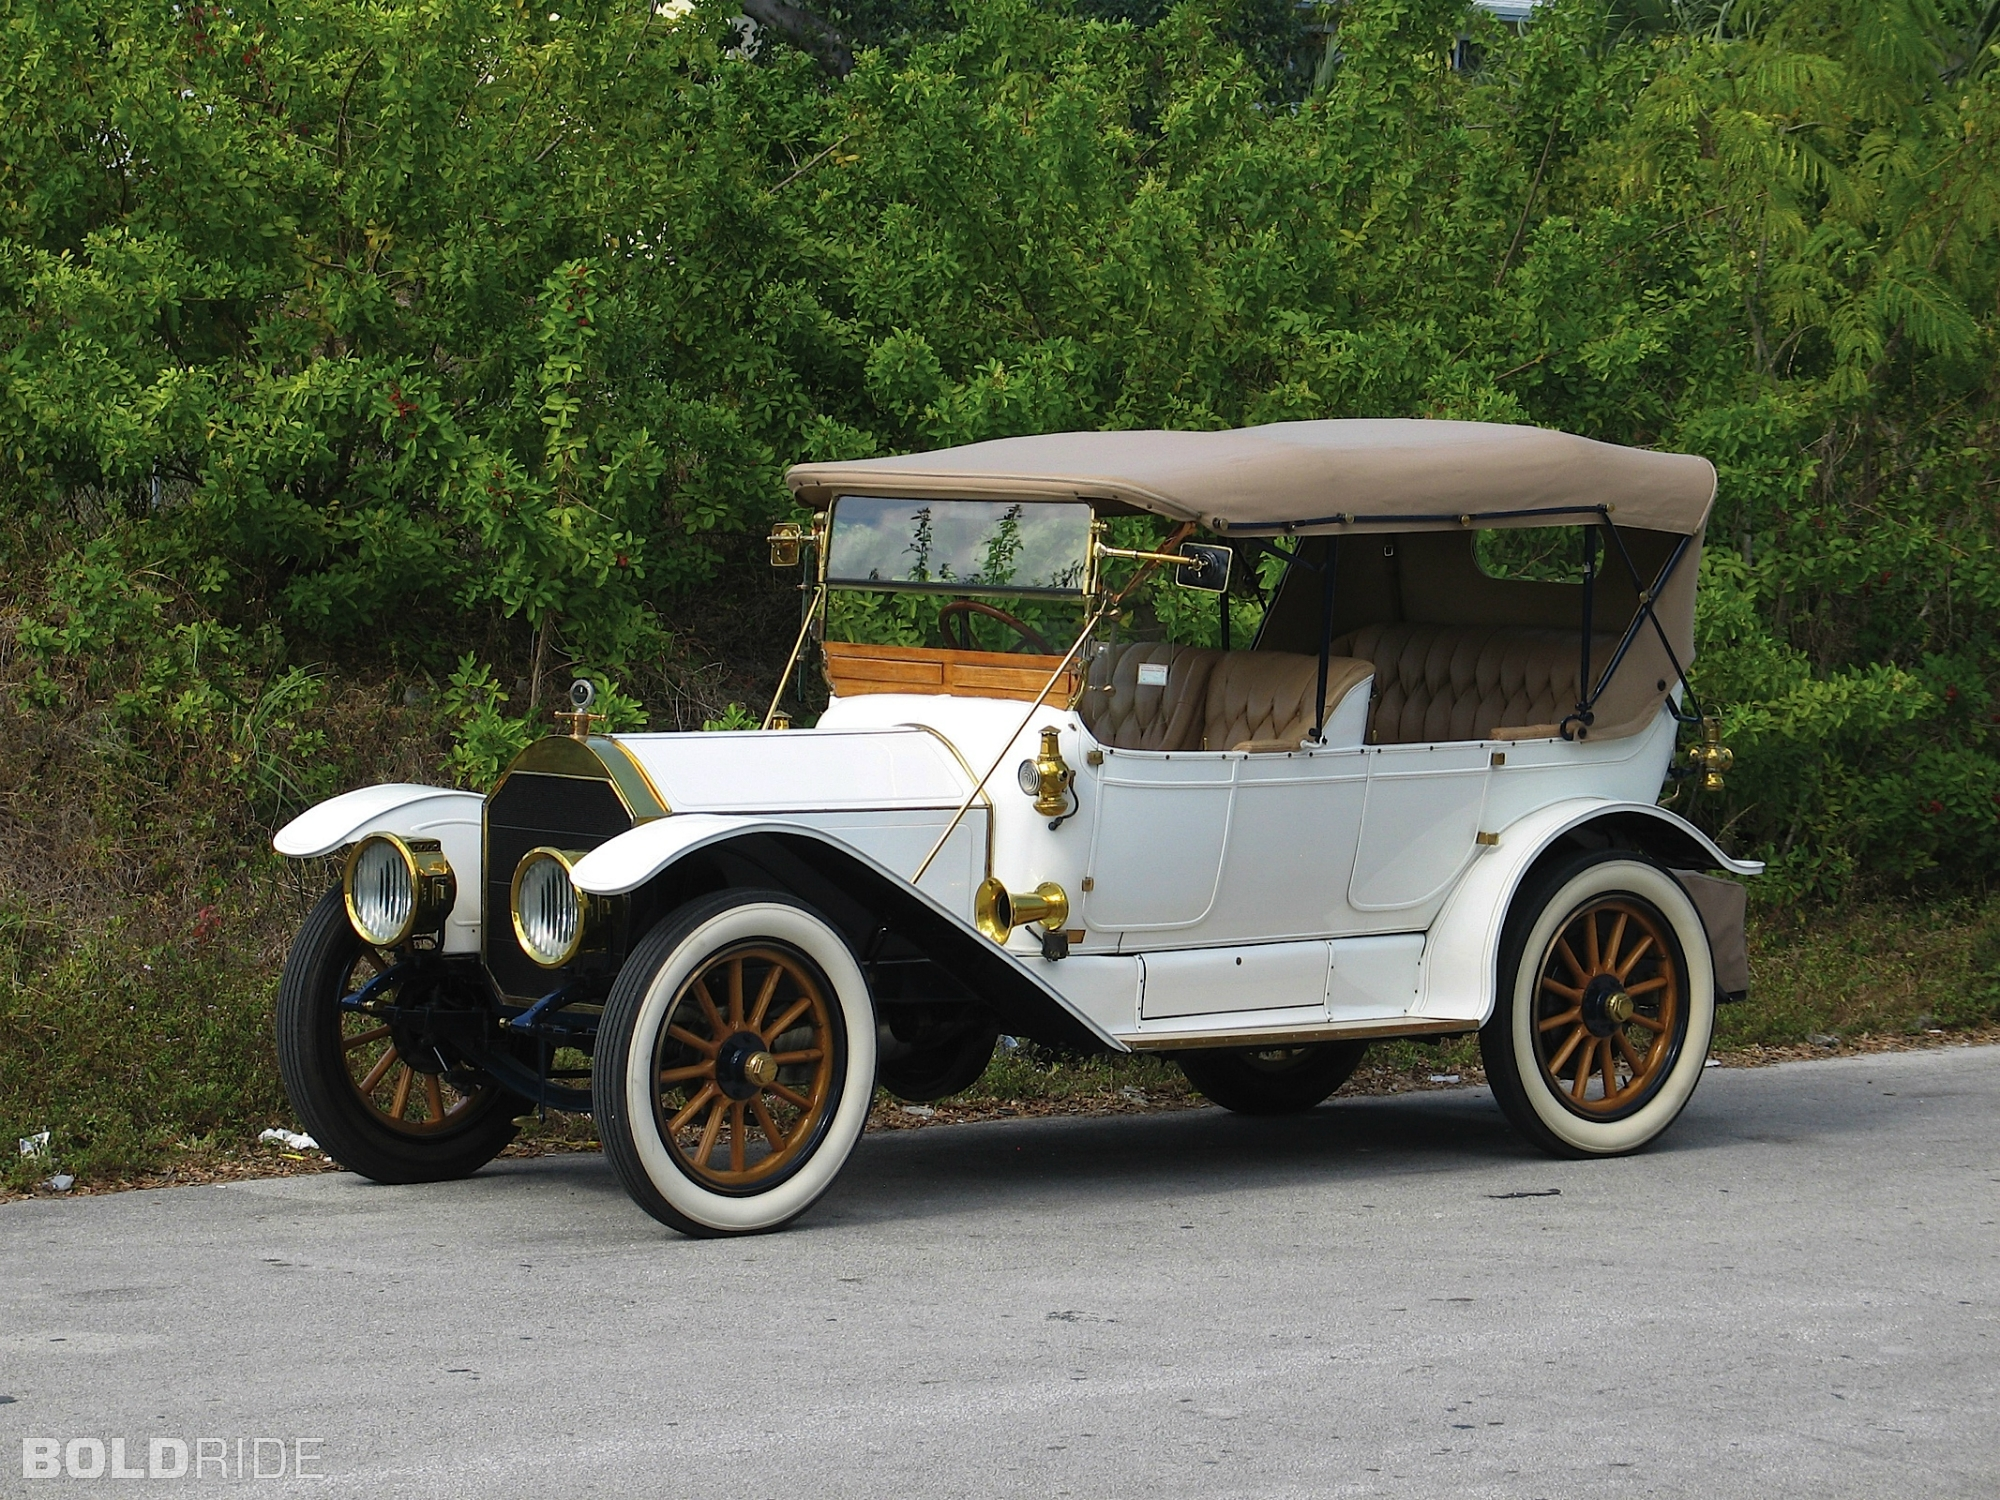 1930 Buick Roadster Backgrounds, Compatible - PC, Mobile, Gadgets| 2000x1500 px